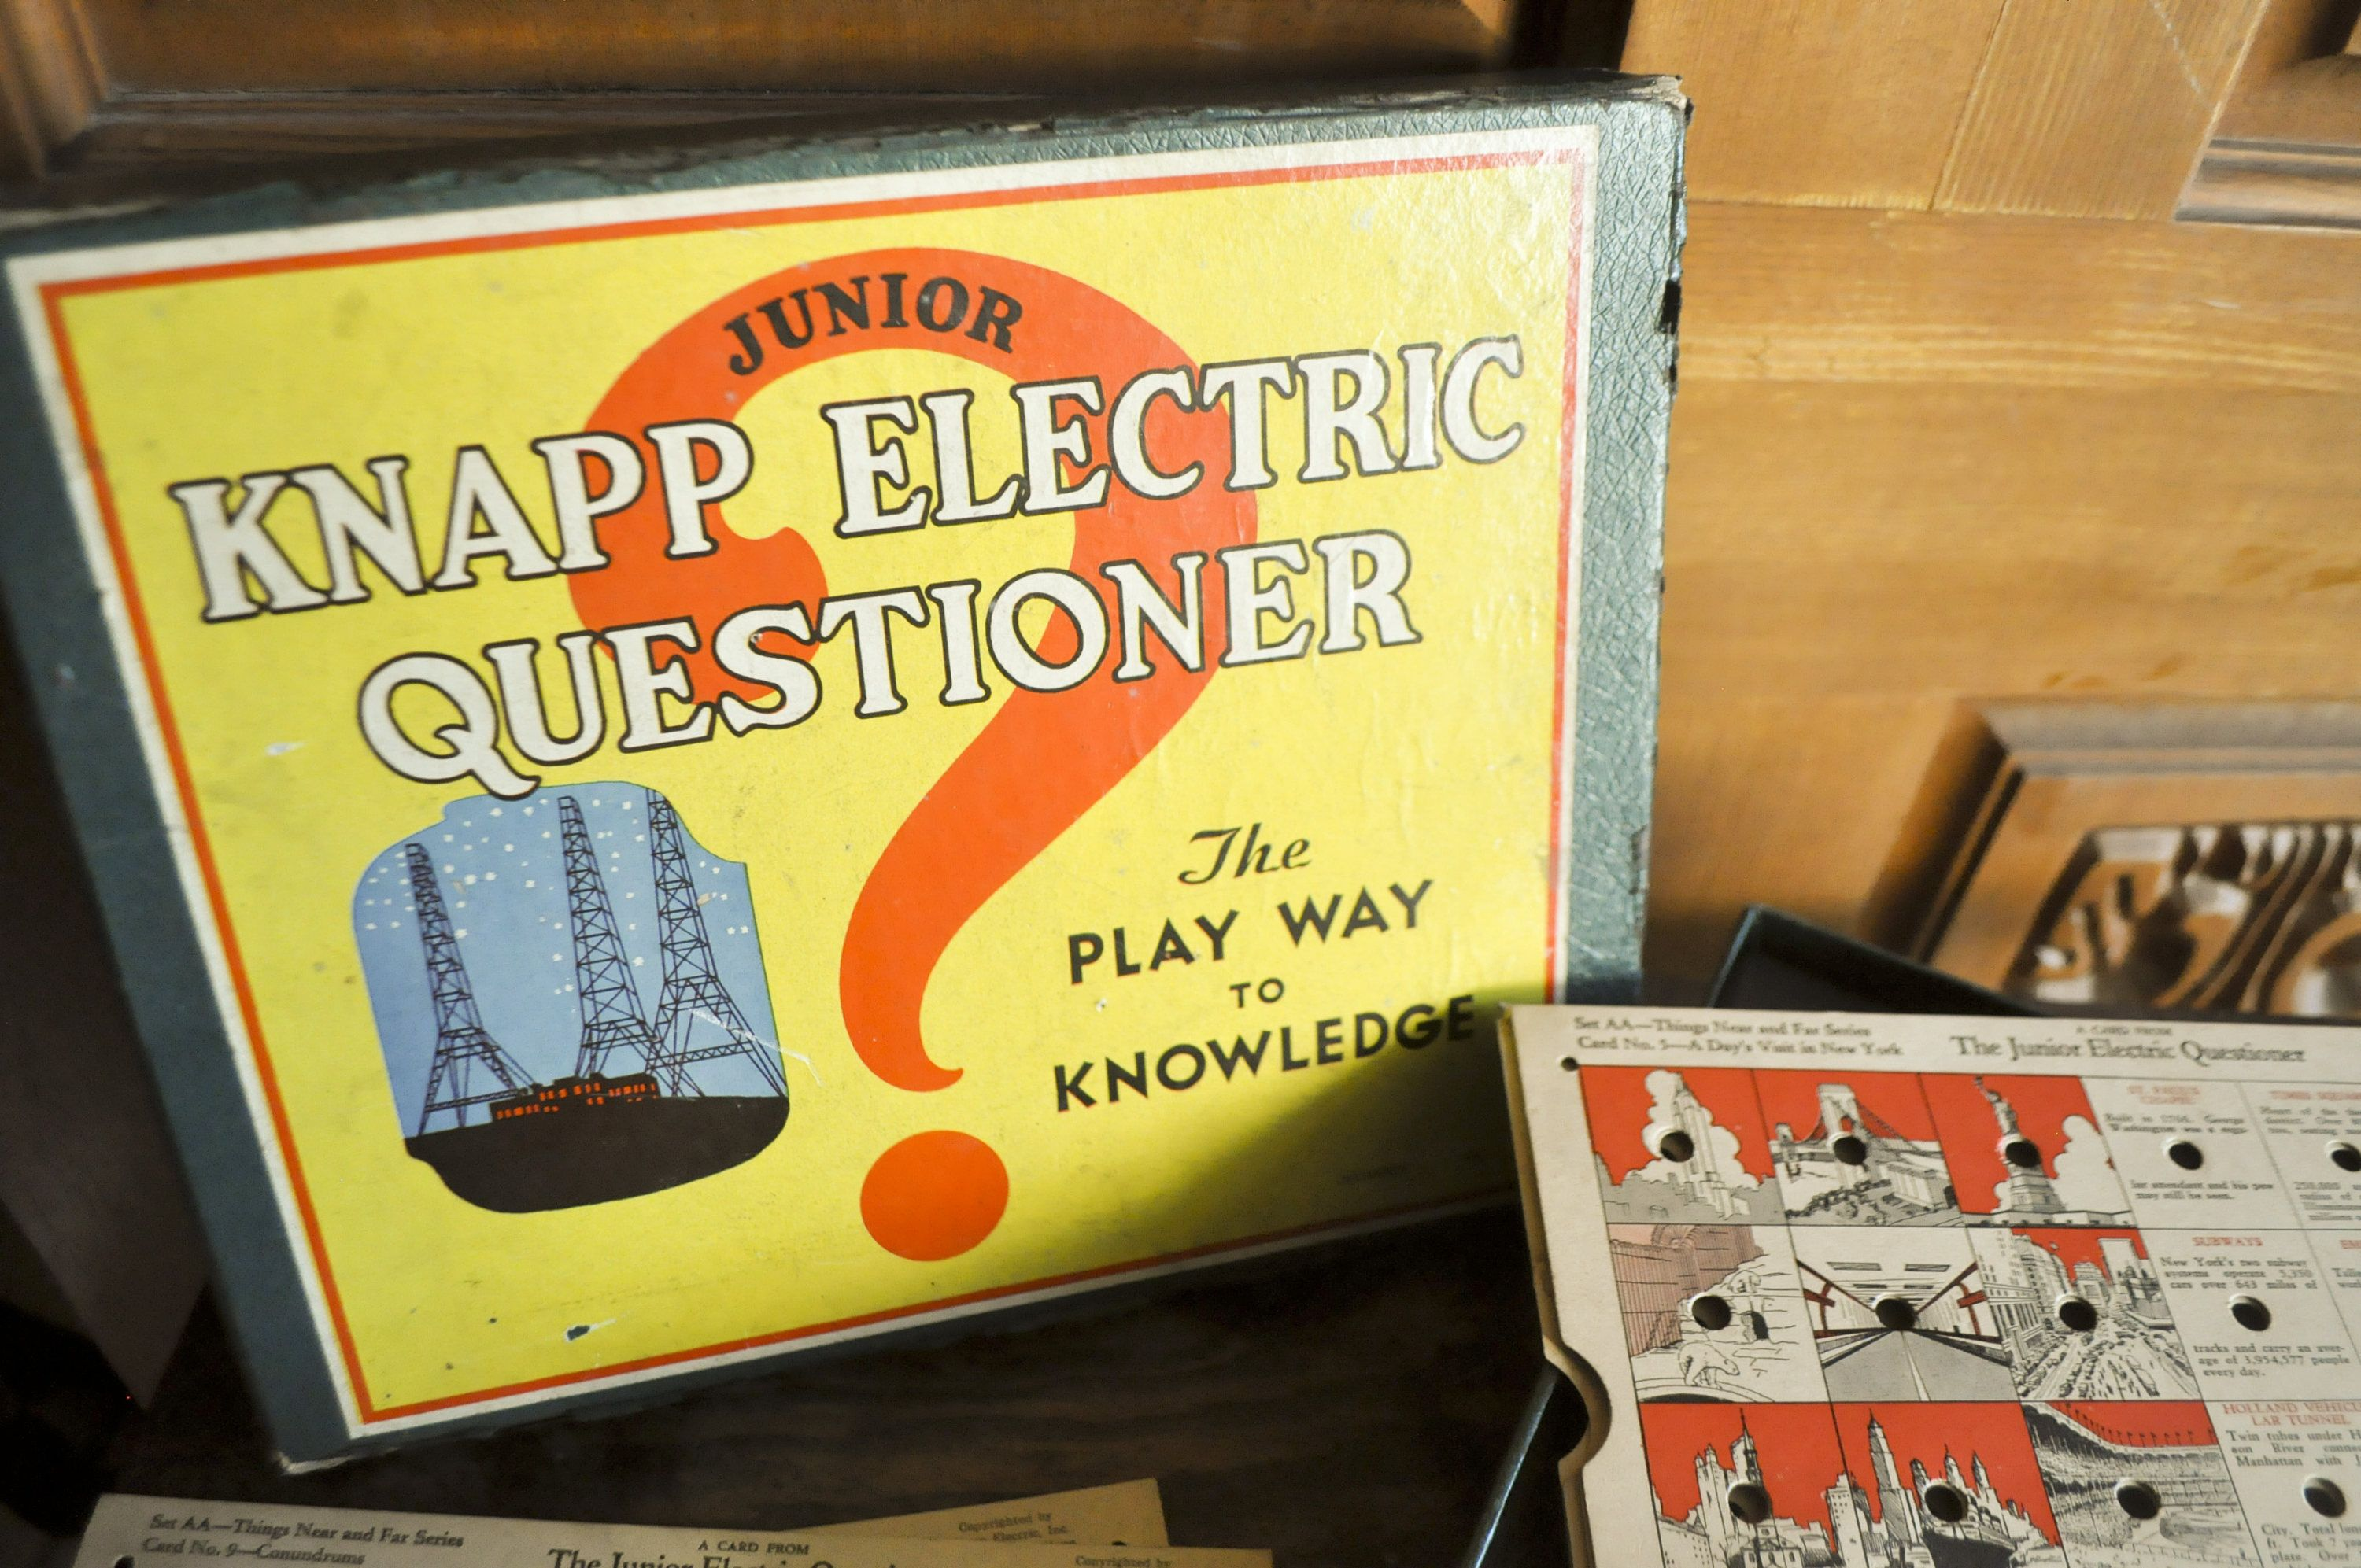 Junior Knapp Electric Questioner No 100 Knapp Electric Inc Old Electric Buzzer Quiz Game By Drowsyswords On Etsy Question Cards Electricity Junior